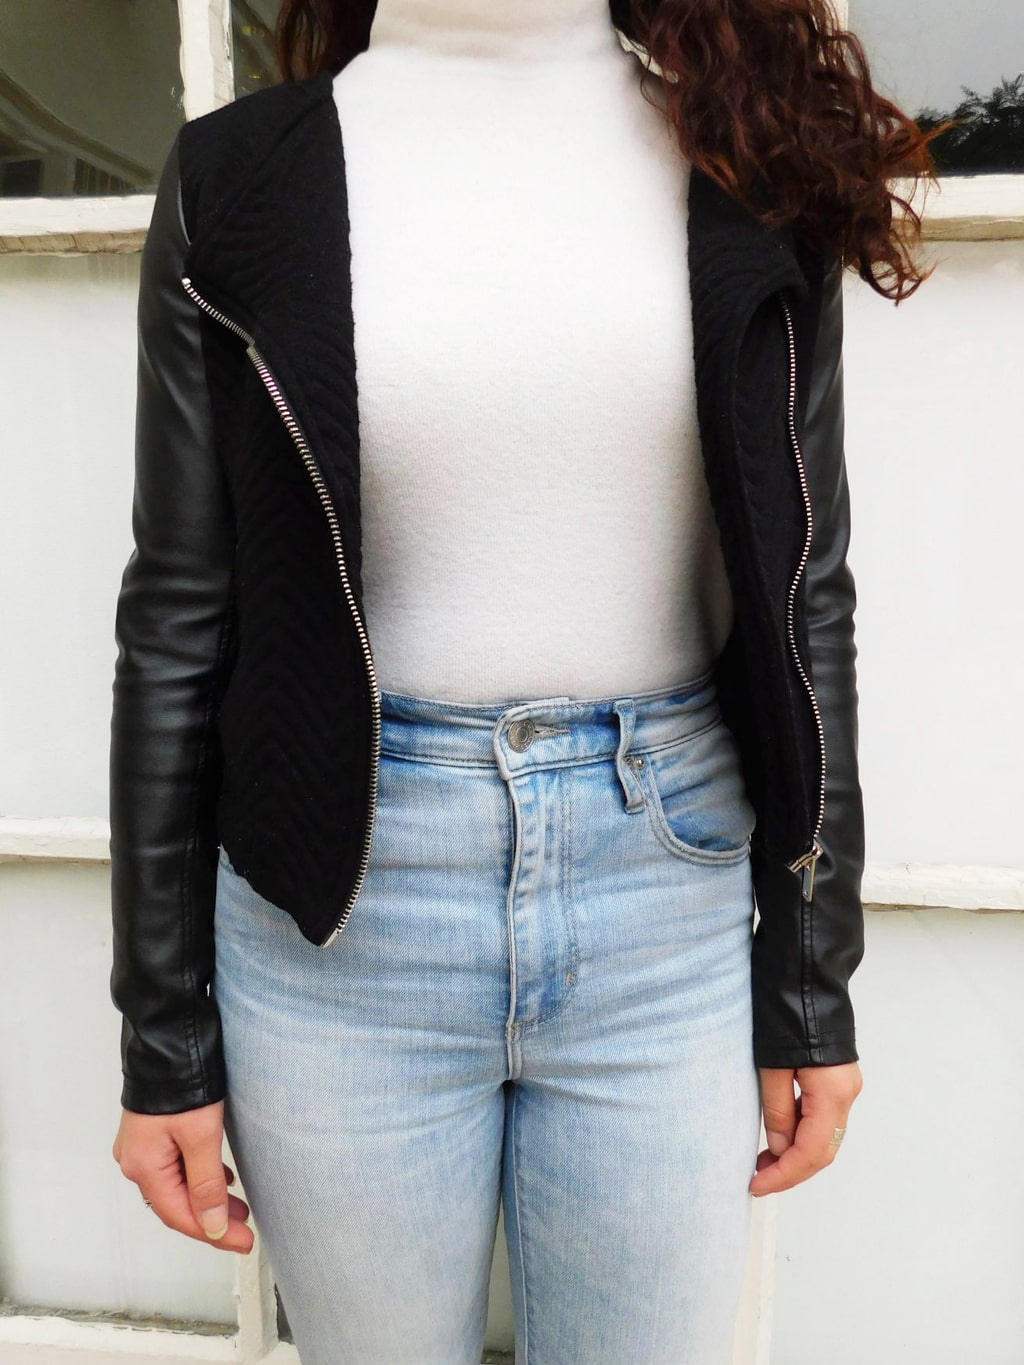 Fashion at Jefferson University: This black motorcycle jacket has is a knit material with faux leather sleeves and silver zippers. It is worn here with a white turtleneck and high-waisted denim jeans.